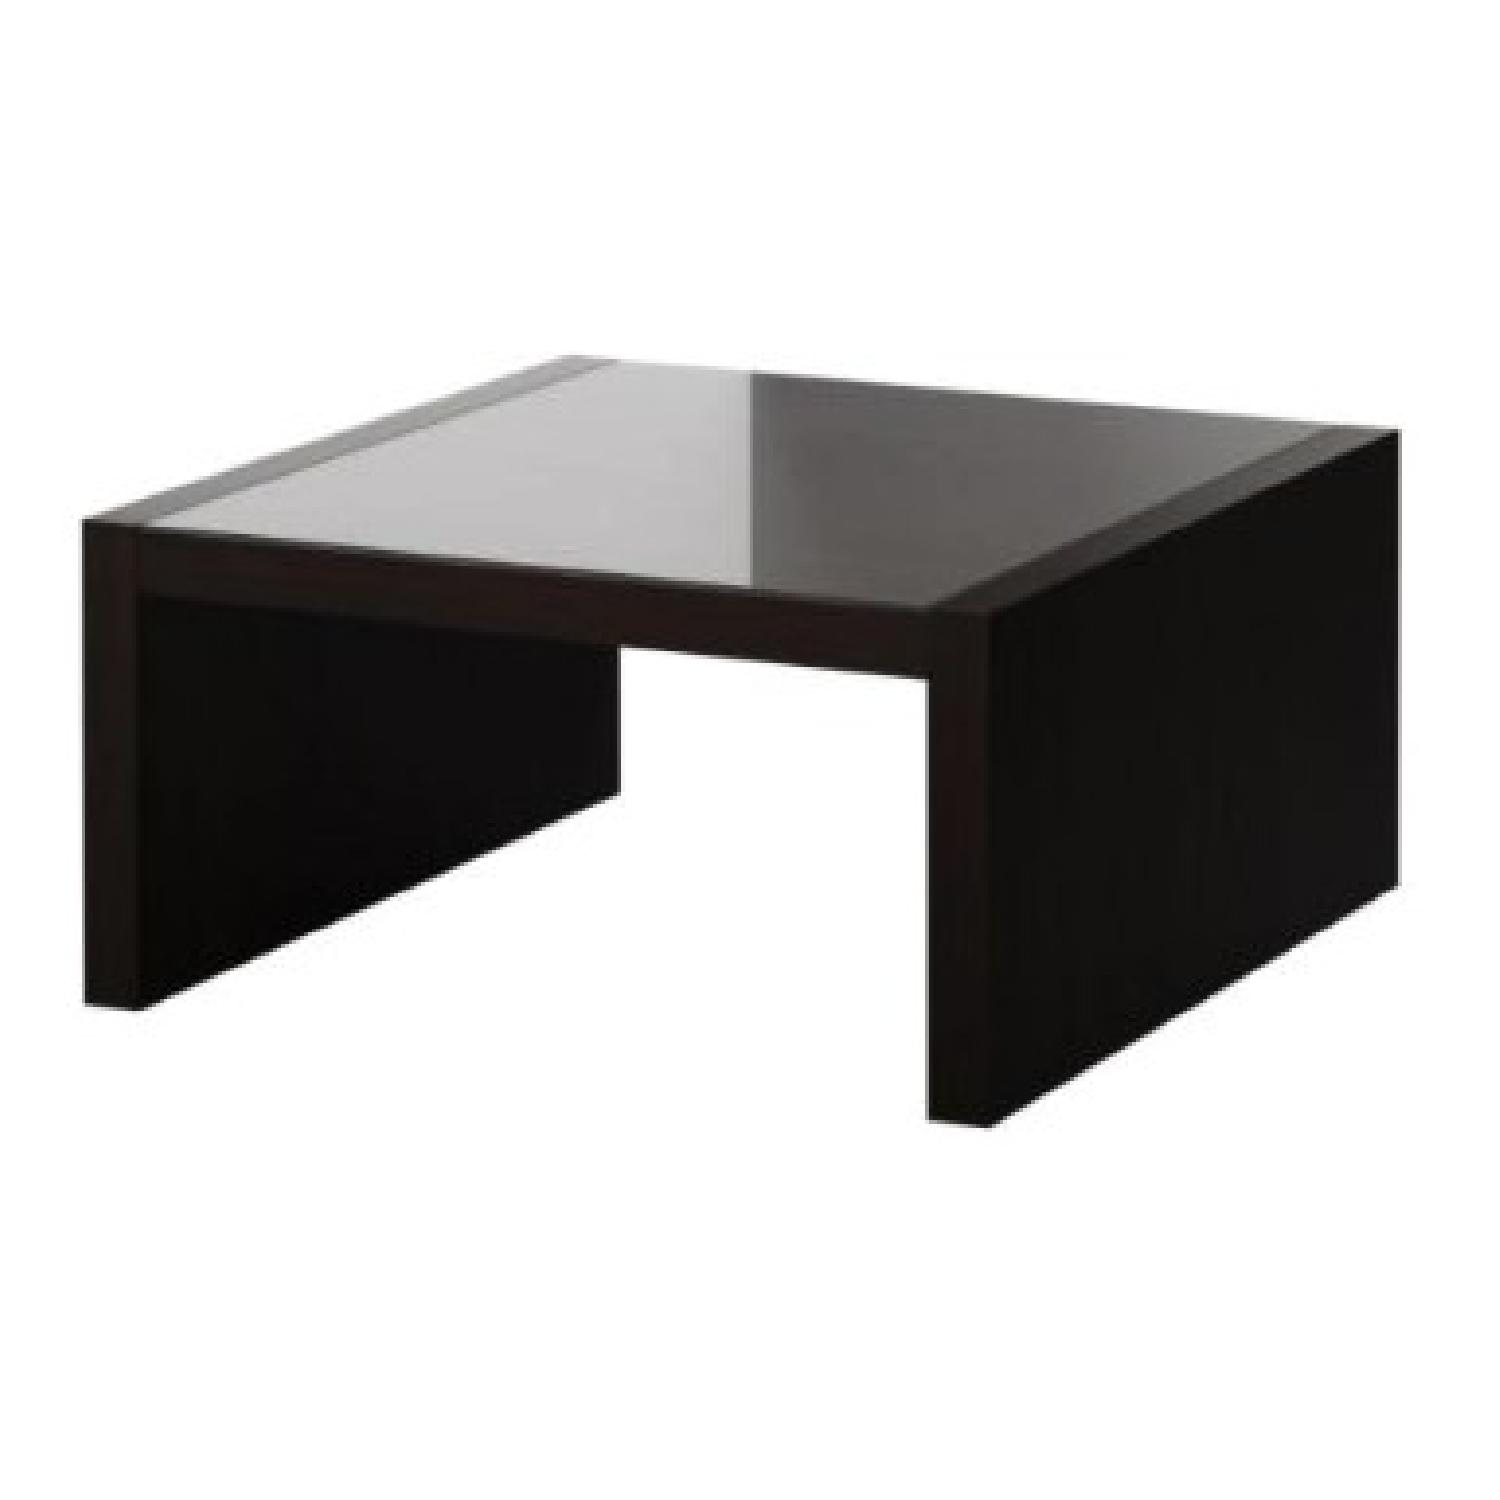 Ikea Expedit Coffee Table Aptdeco # Notice Expedit Ikea